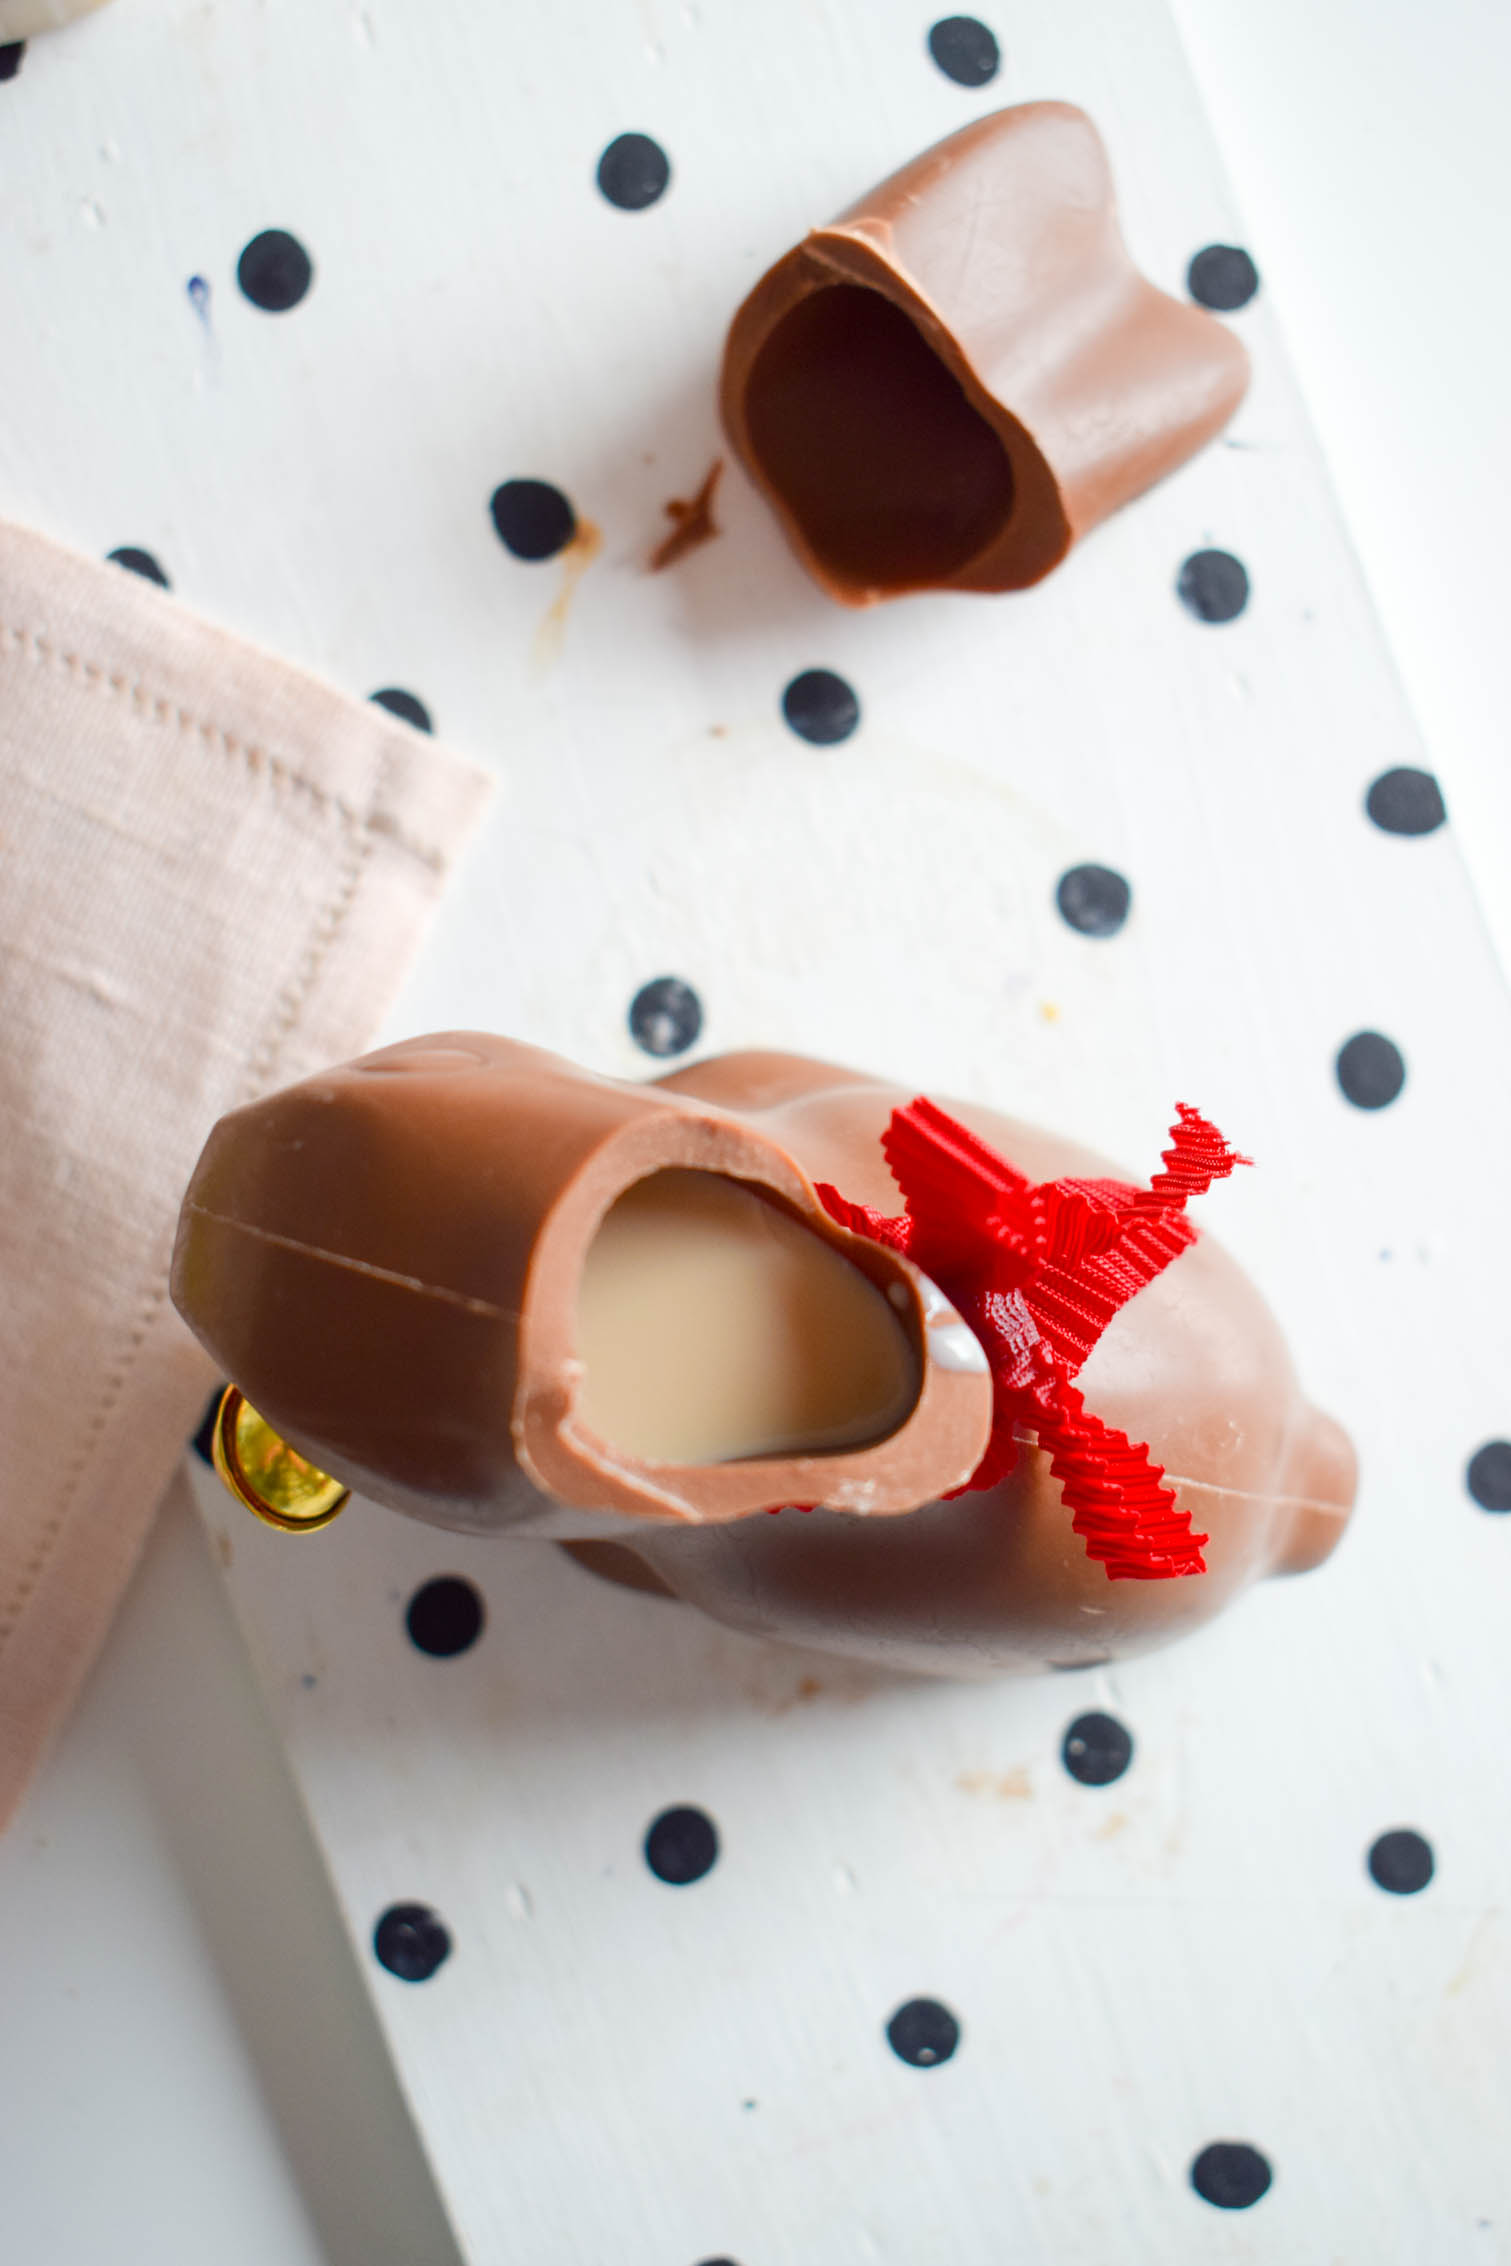 Put a fun twist on the classic chocolate bunny easter cocktail, and add a candy flower crown or make s'mores with your cocktail!